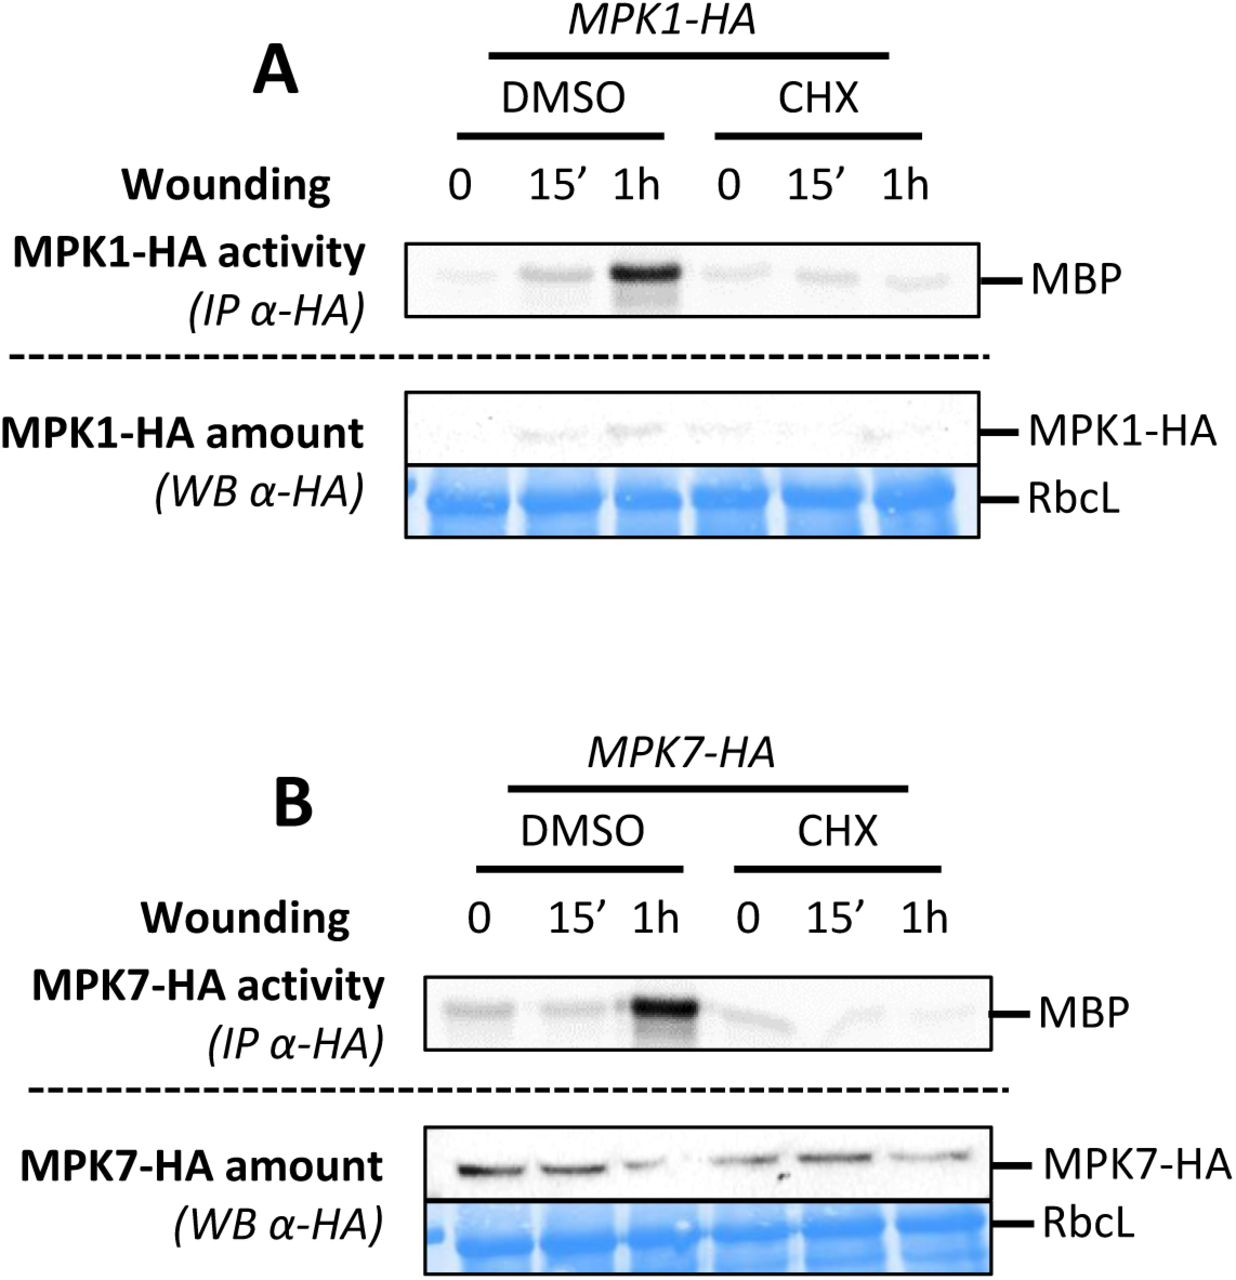 MPK1, MPK2 and MPK7 are activated by JA A to C. Kinase activity of MPK2 (A), MPK1 (B) and MPK7 (C) after immunoprecipitation with an anti-HA antibody from leaves of WT (A, B, C) and mkk3-1 (A, C) plants expressing a HA-tagged version of MPK2 (A), MPK1 (B) and MPK7 (C) following 50µM JA or MOCK (EtOH) treatments for indicated times. Protein amount is monitored by western-blot using anti-HA antibody. Equal loading is controlled by Coomassie staining.